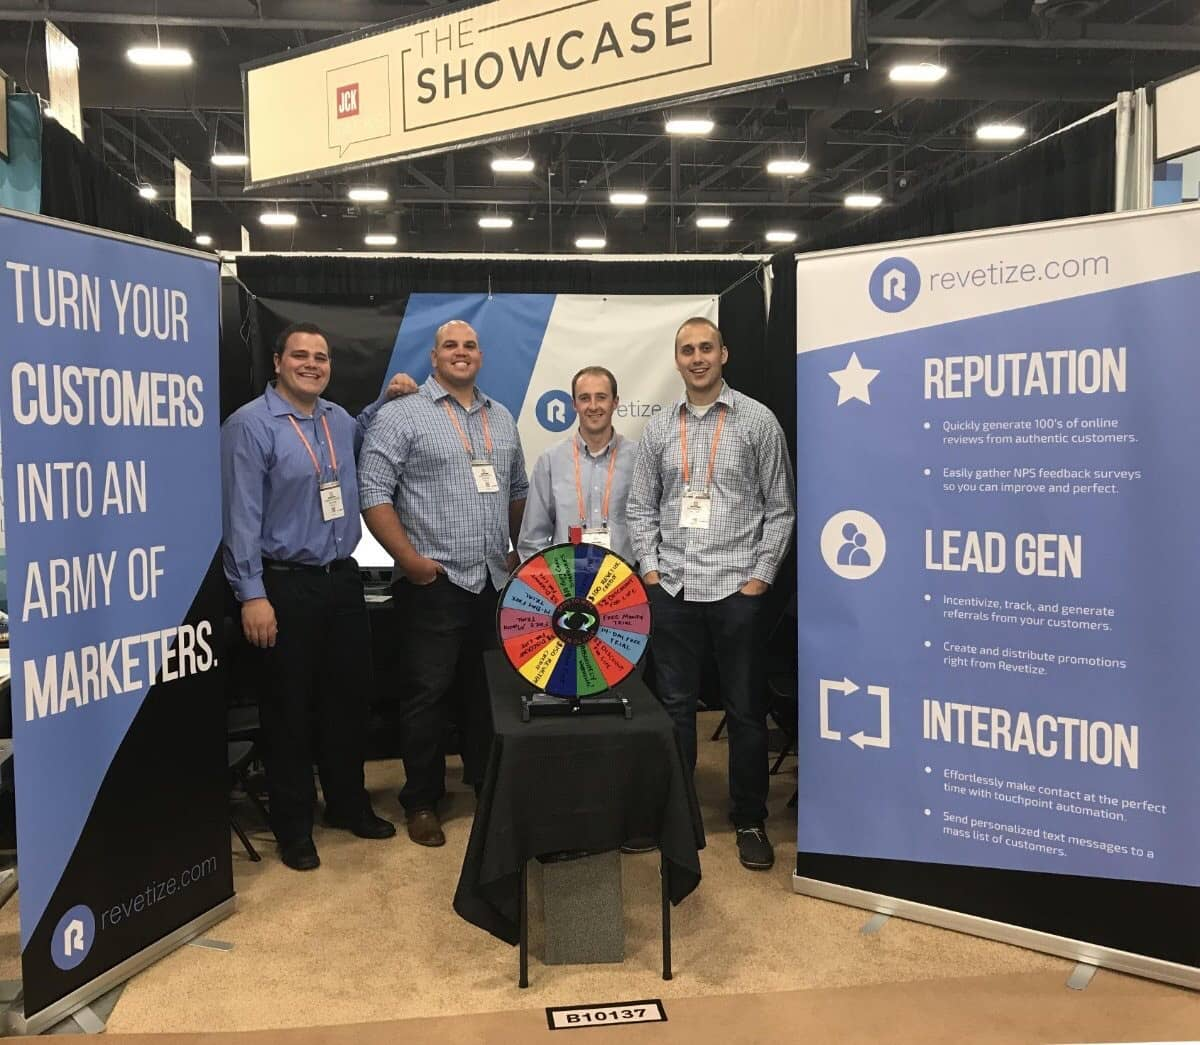 Richardson (left) and his team at a trade show